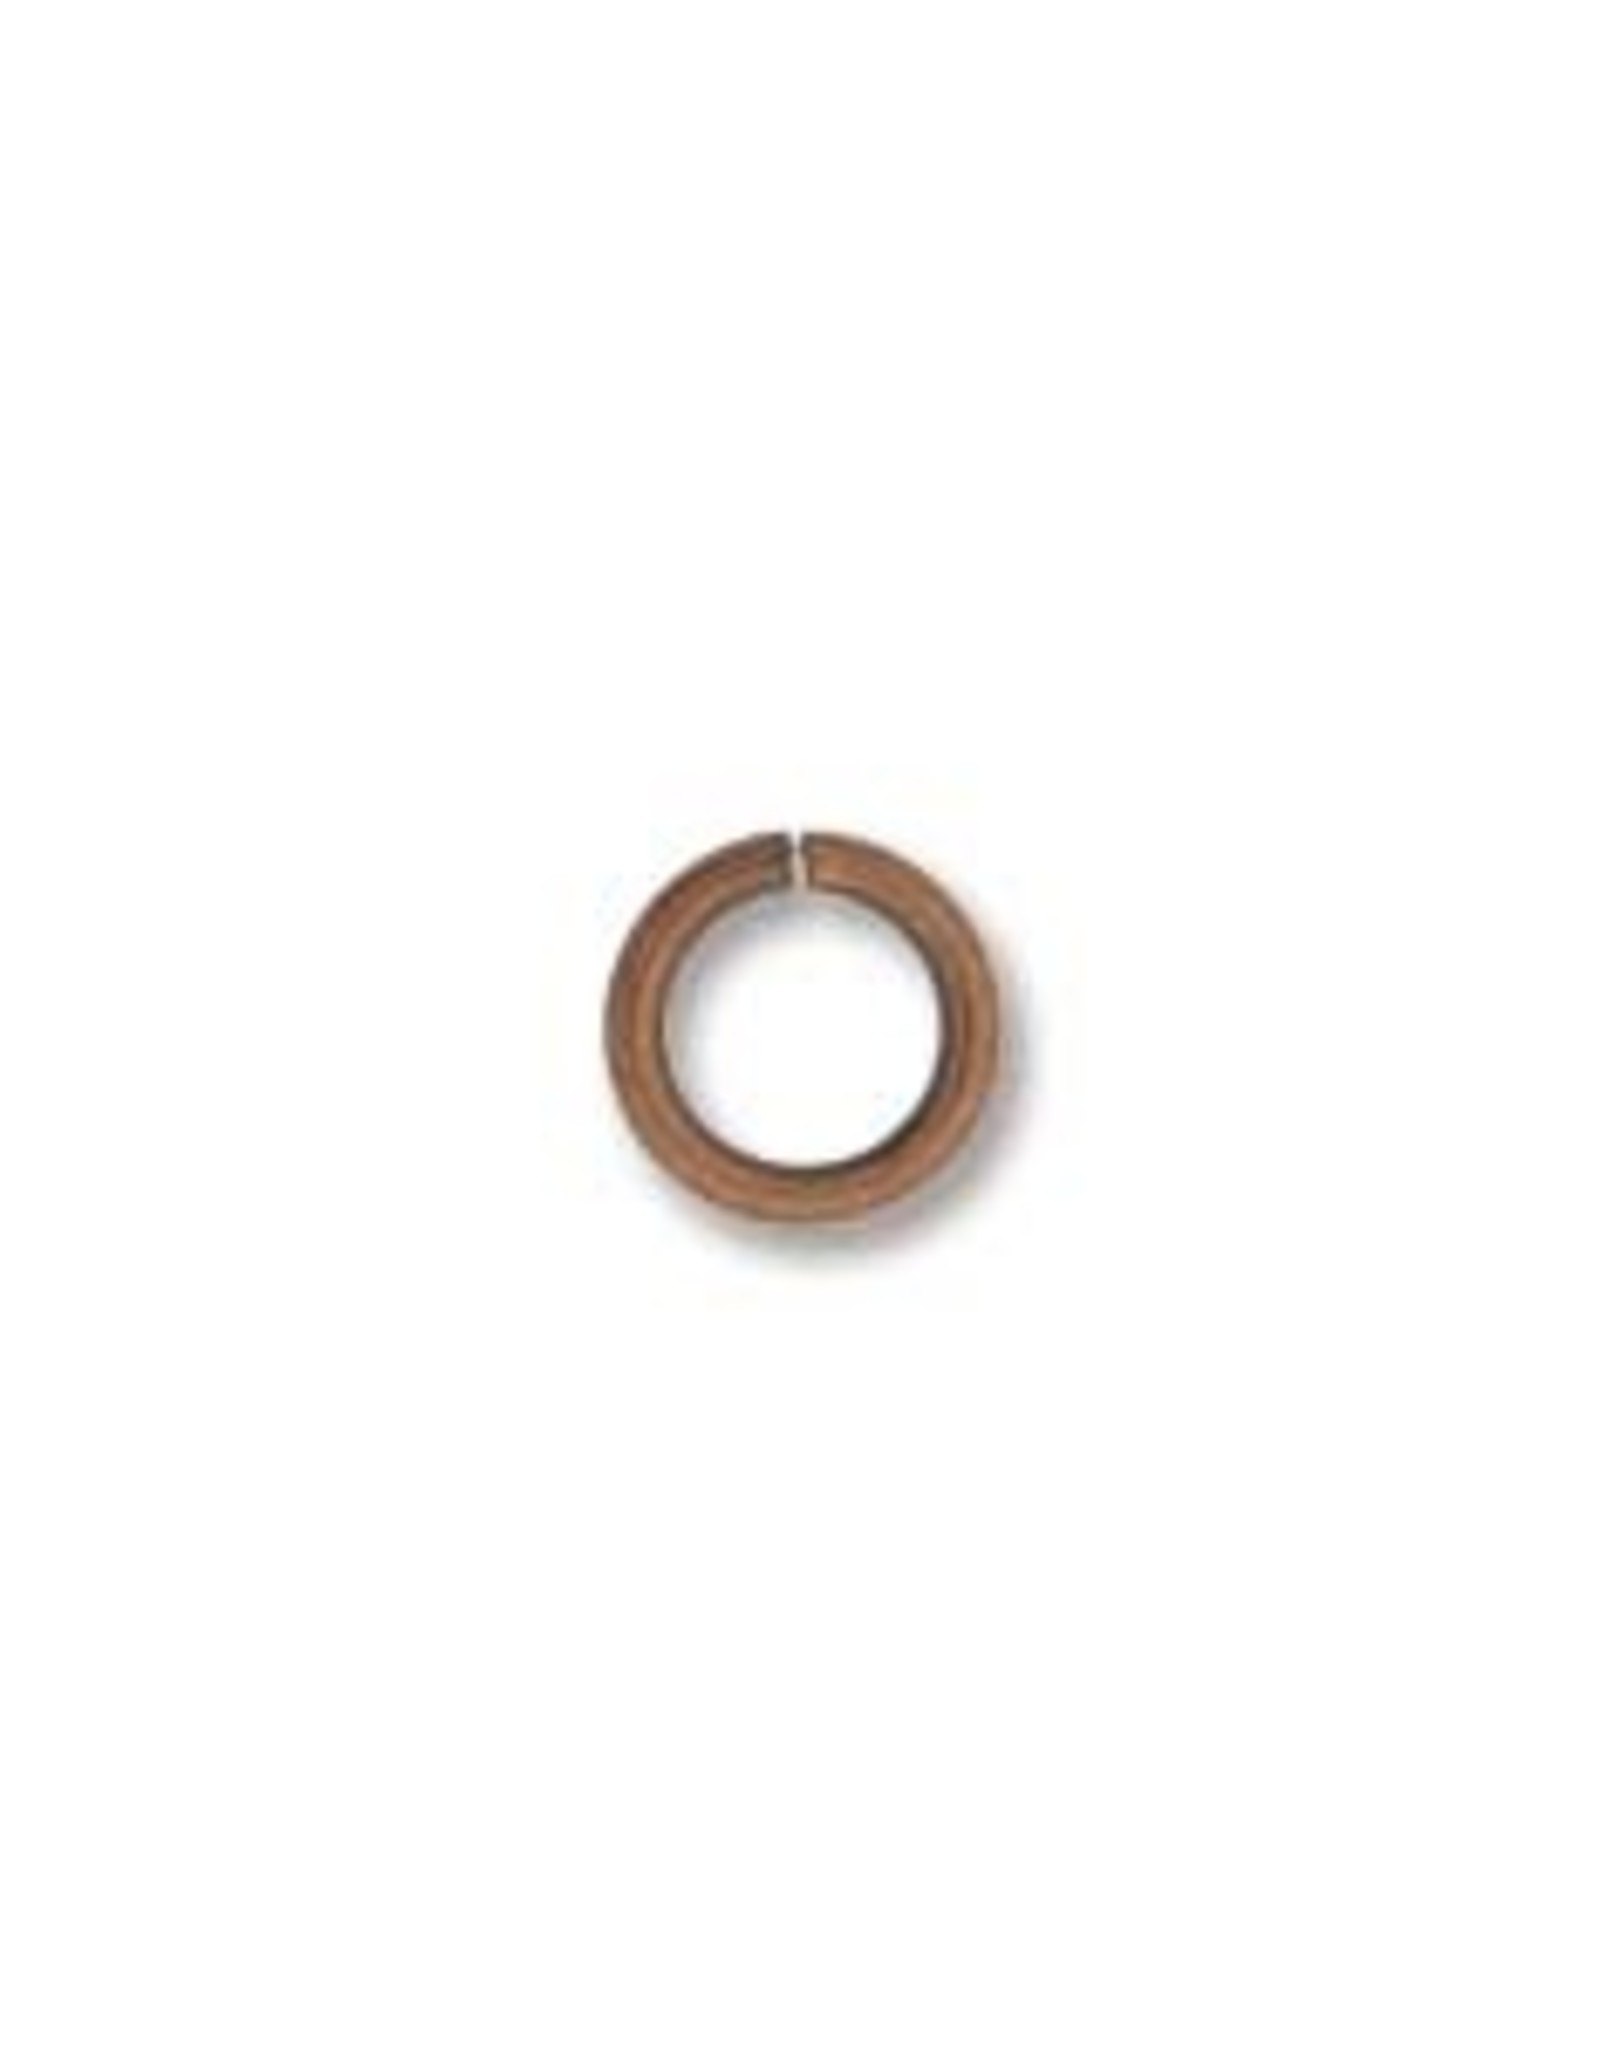 4mm Jumpring 21ga Ant Copper Plated Qty 25